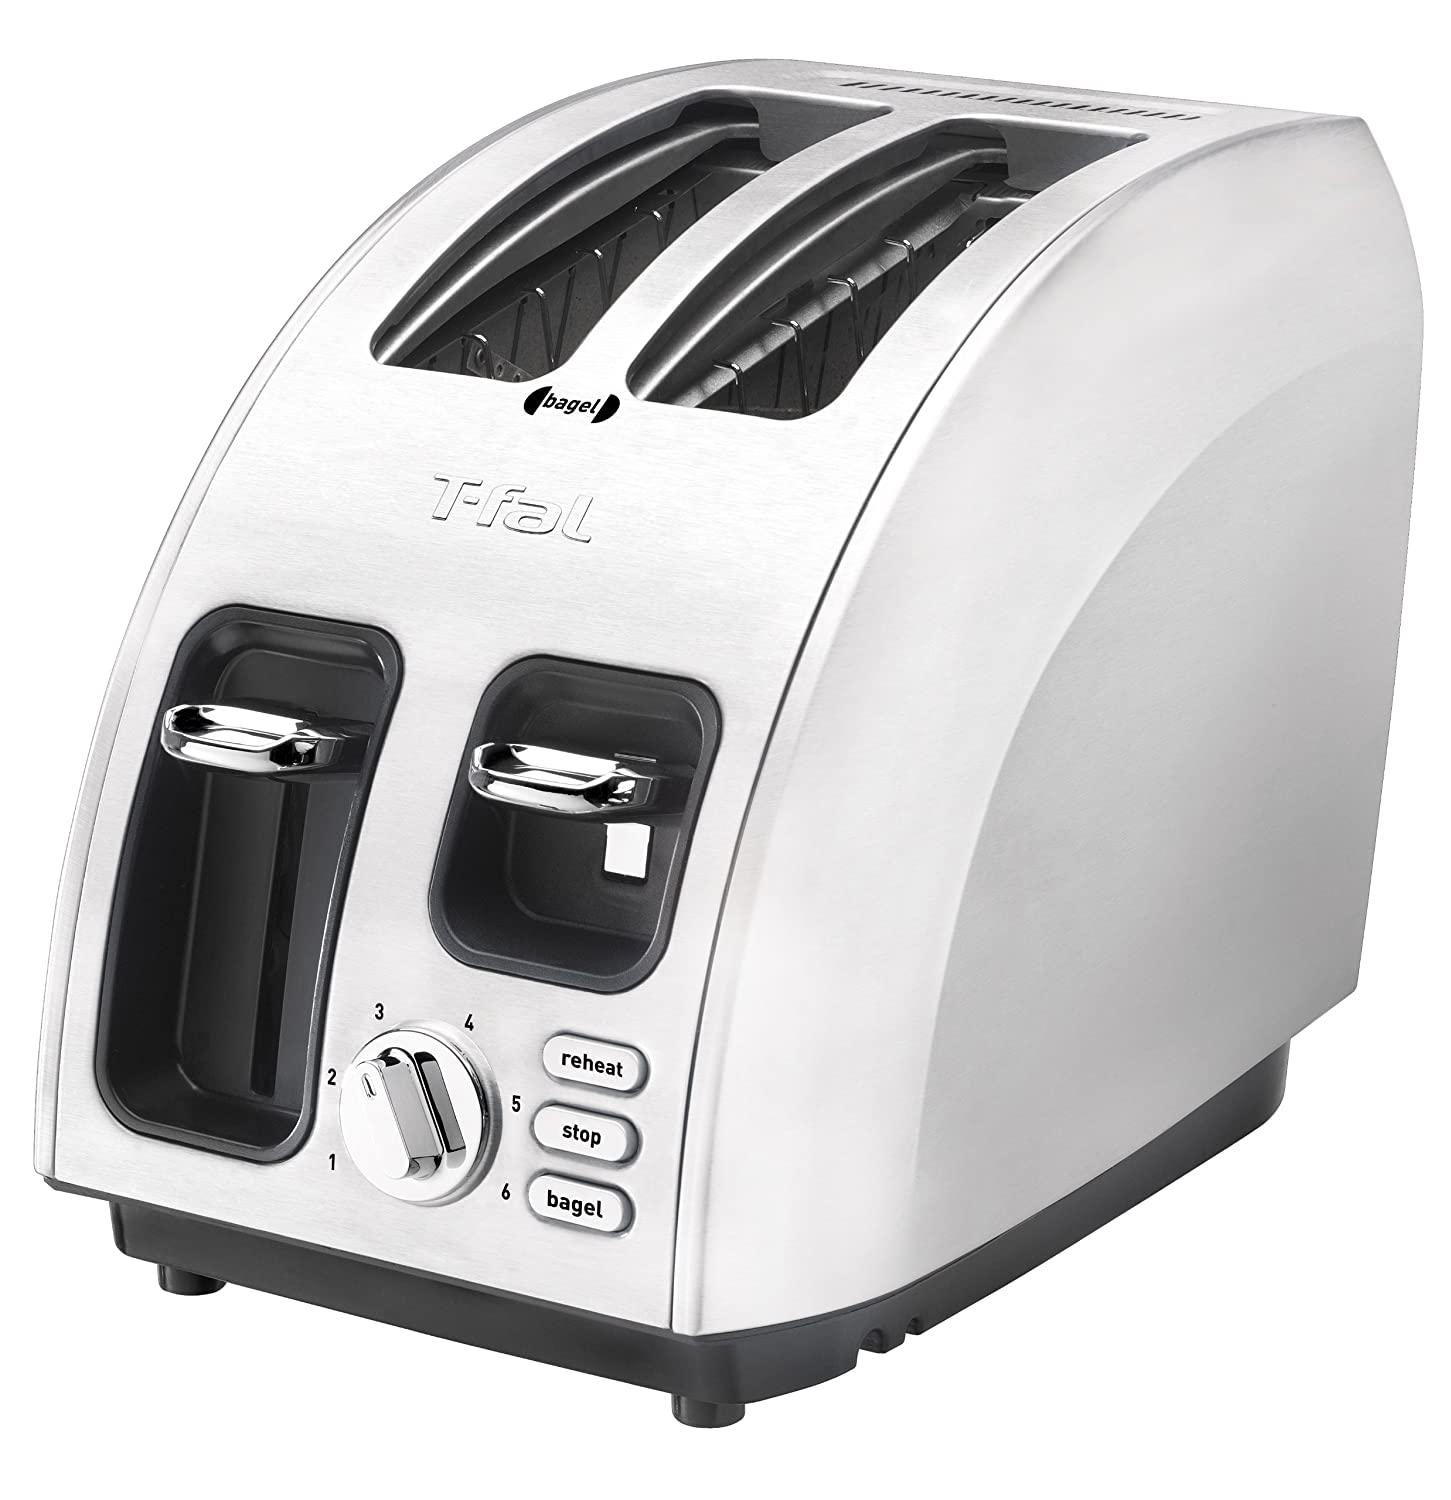 T-fal Avante Icon 2-Slice Toaster (Brushed Stainless Steel body)